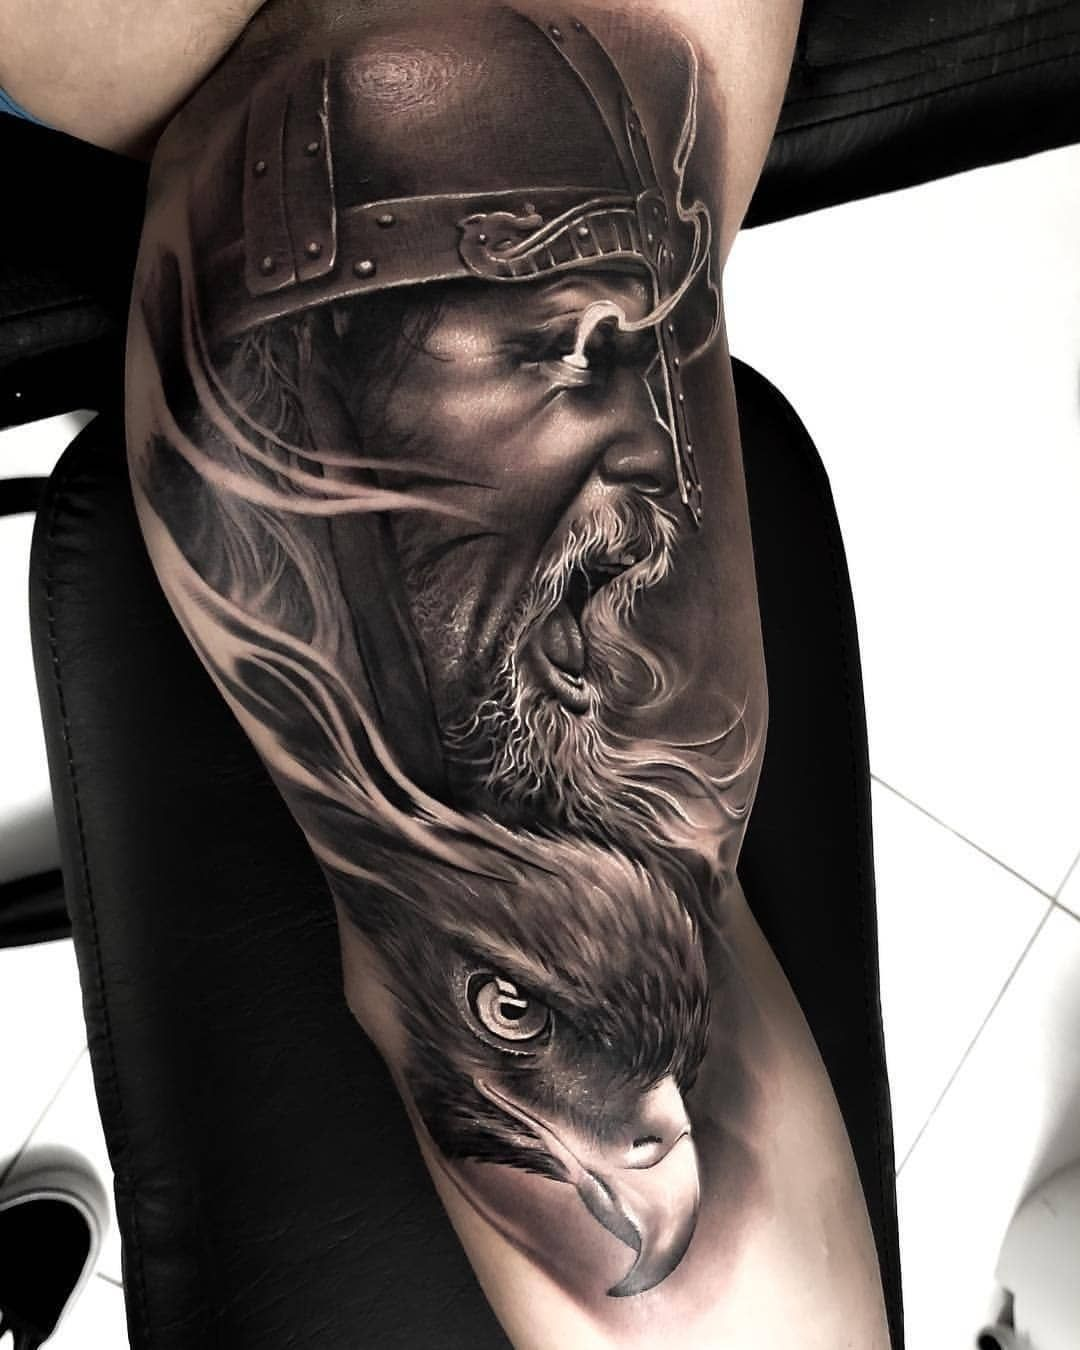 Top 103 Warrior Tattoo Ideas 2020 Inspiration Guide Forearm Tattoo Men Warrior Tattoos Tattoos For Guys